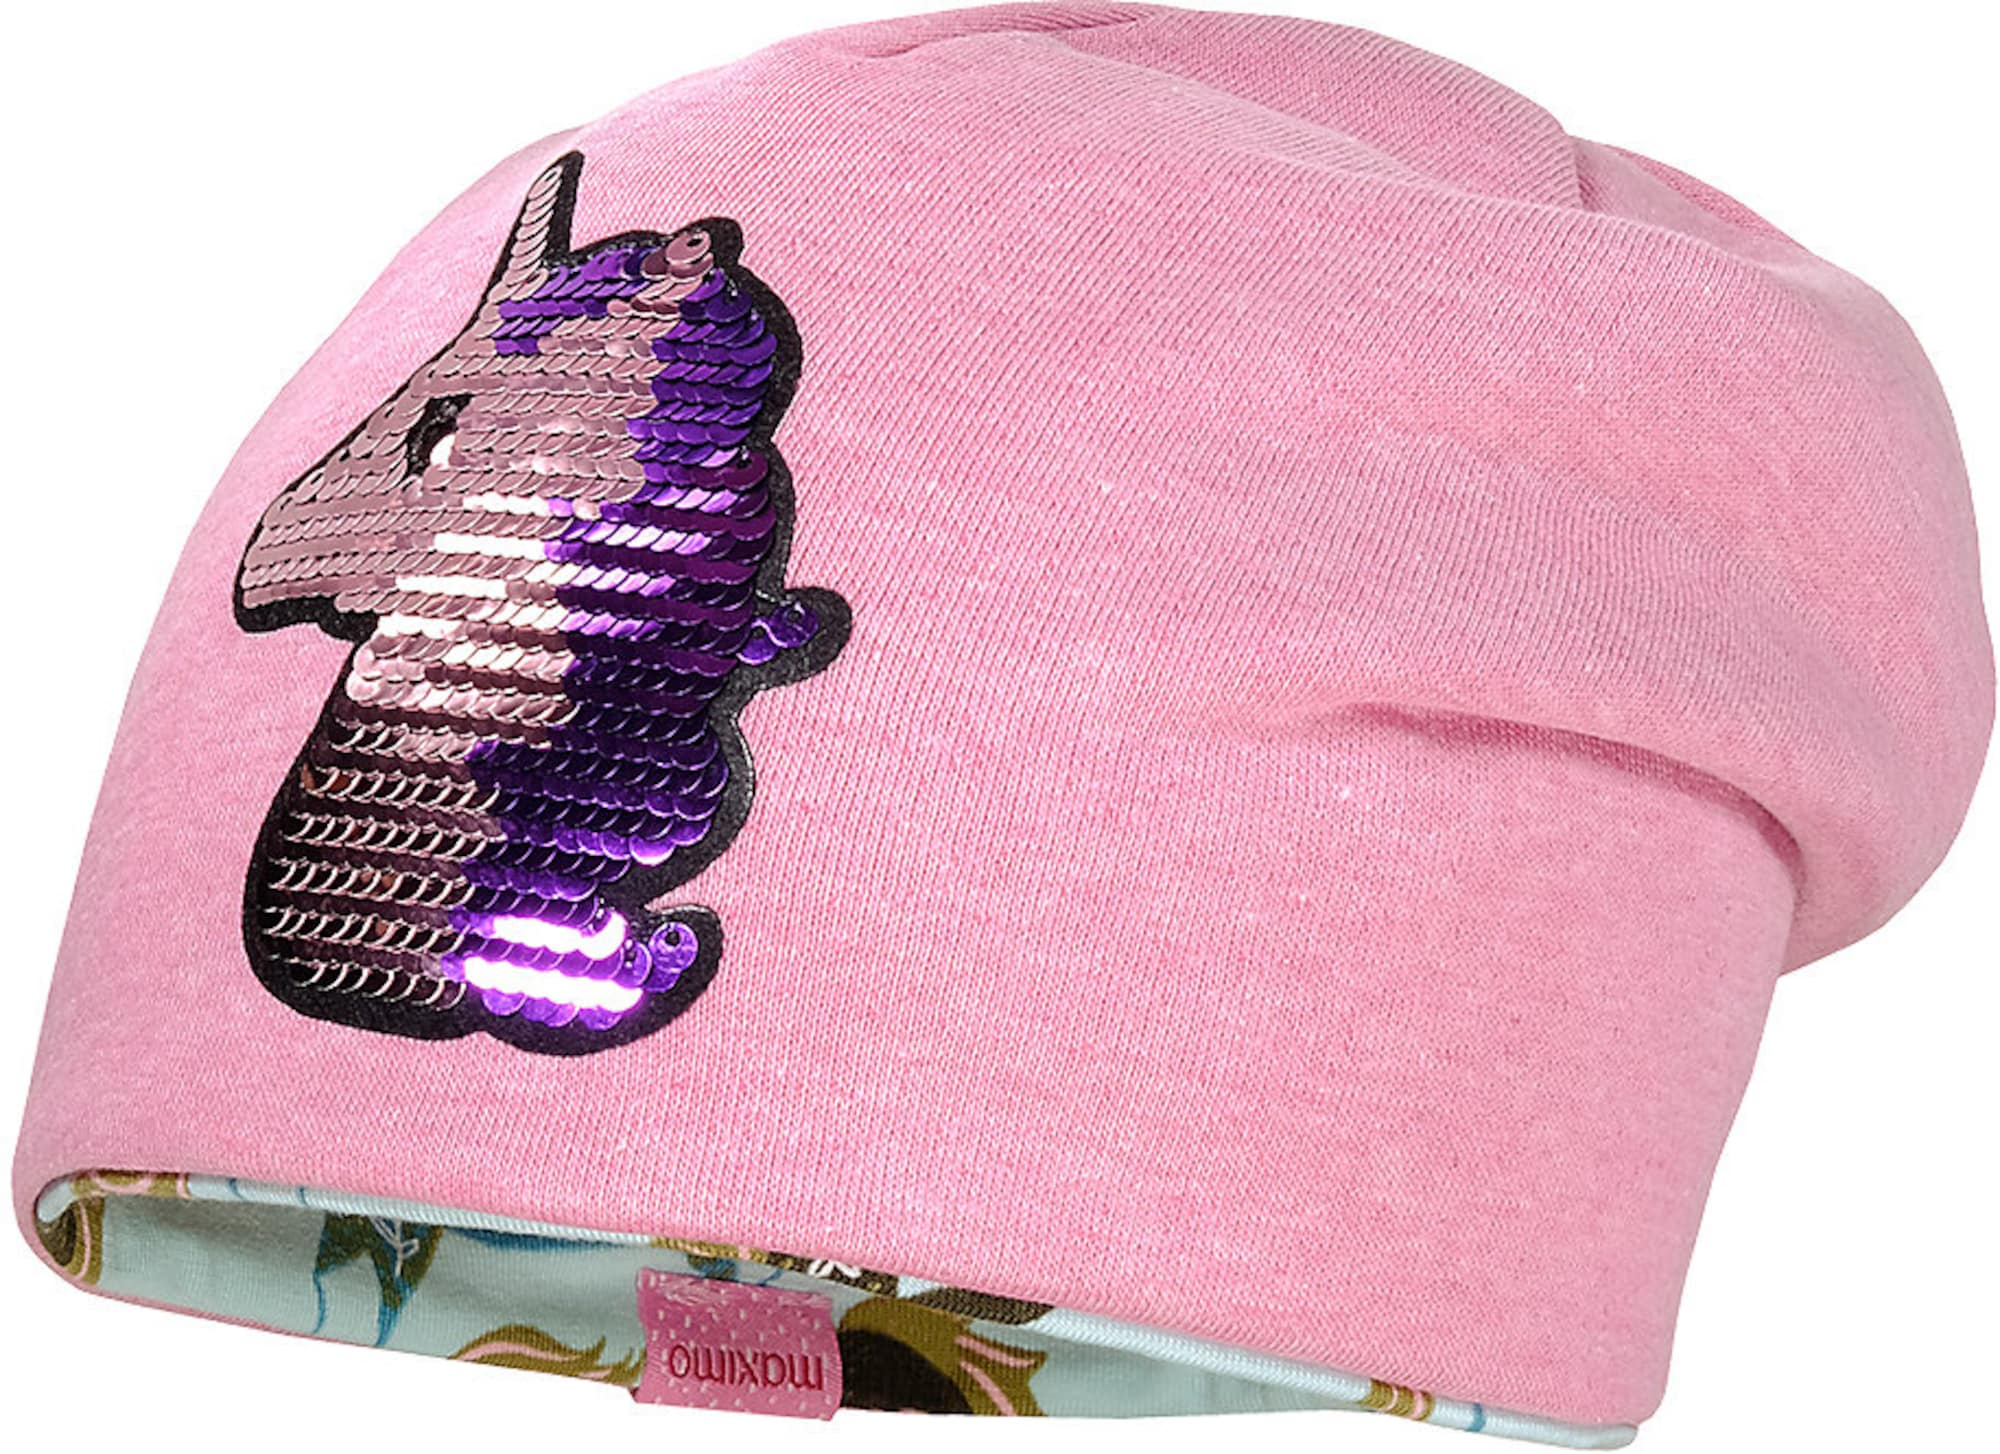 Babyaccessoires - Beanie - Onlineshop ABOUT YOU